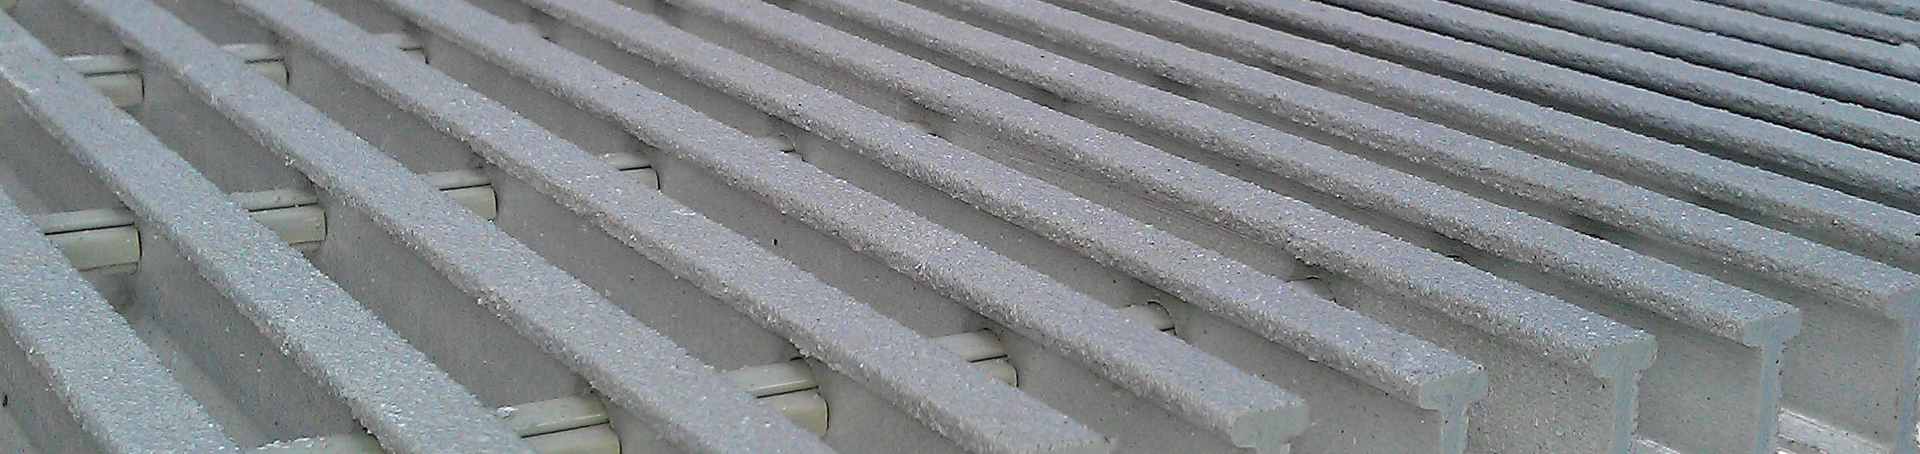 Pit Grates Fiberglass Grating For Industrial Uses By